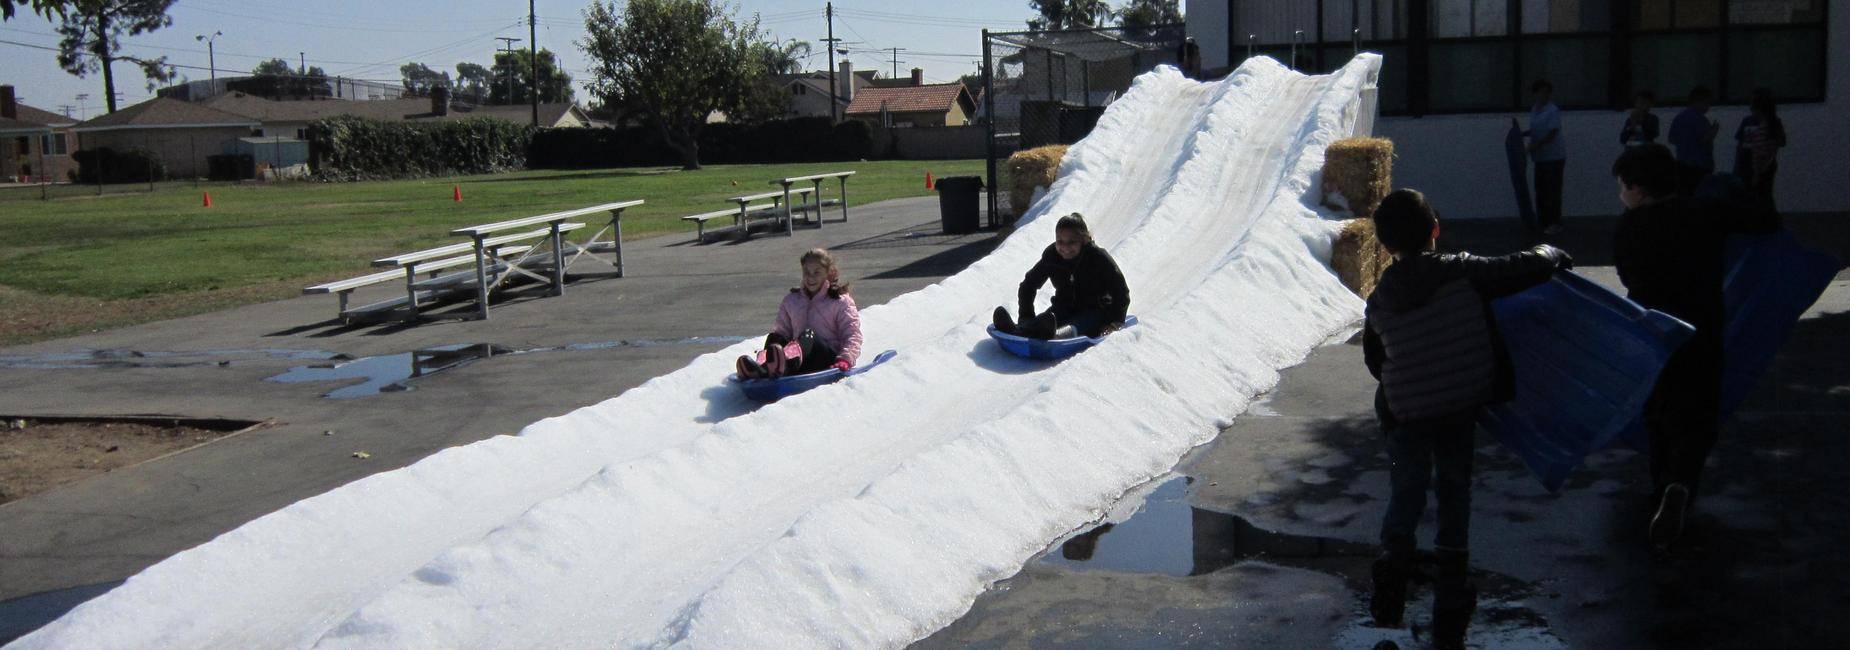 Two girls sled down a hill of snow.